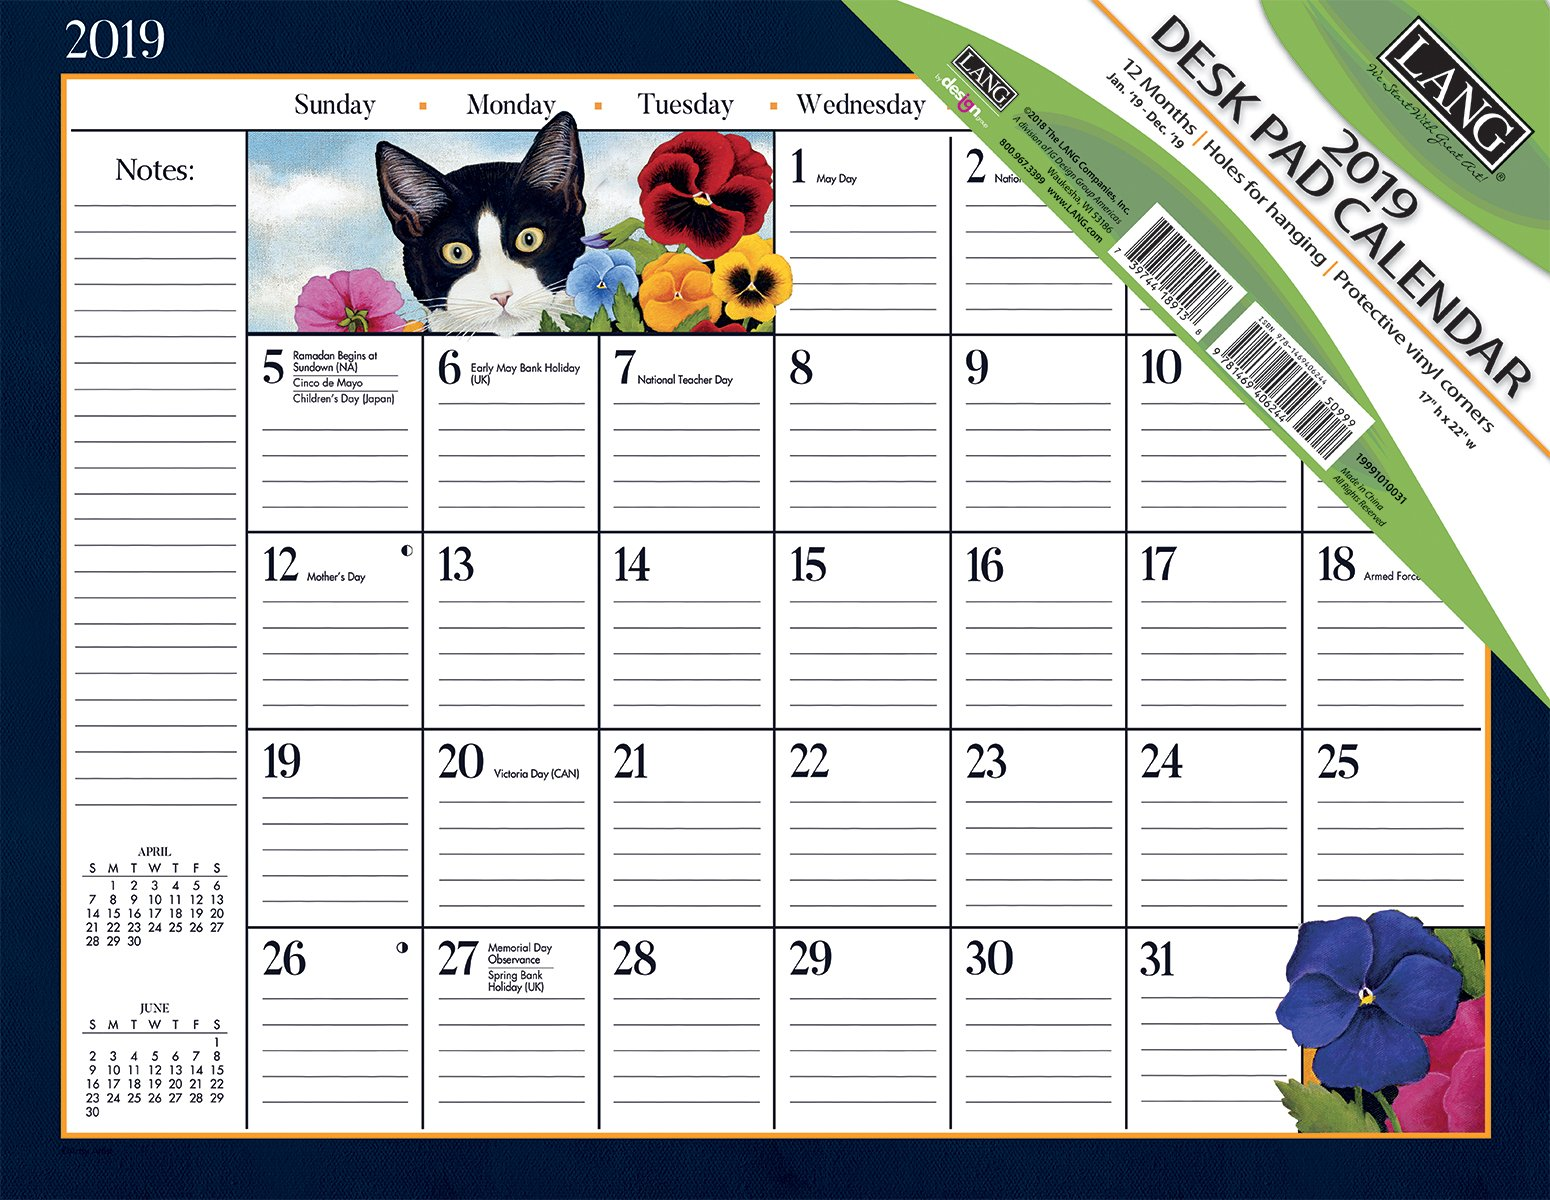 Lang American Cat 2019 Deskpad Office Desk Pad Calendar (19991010031)